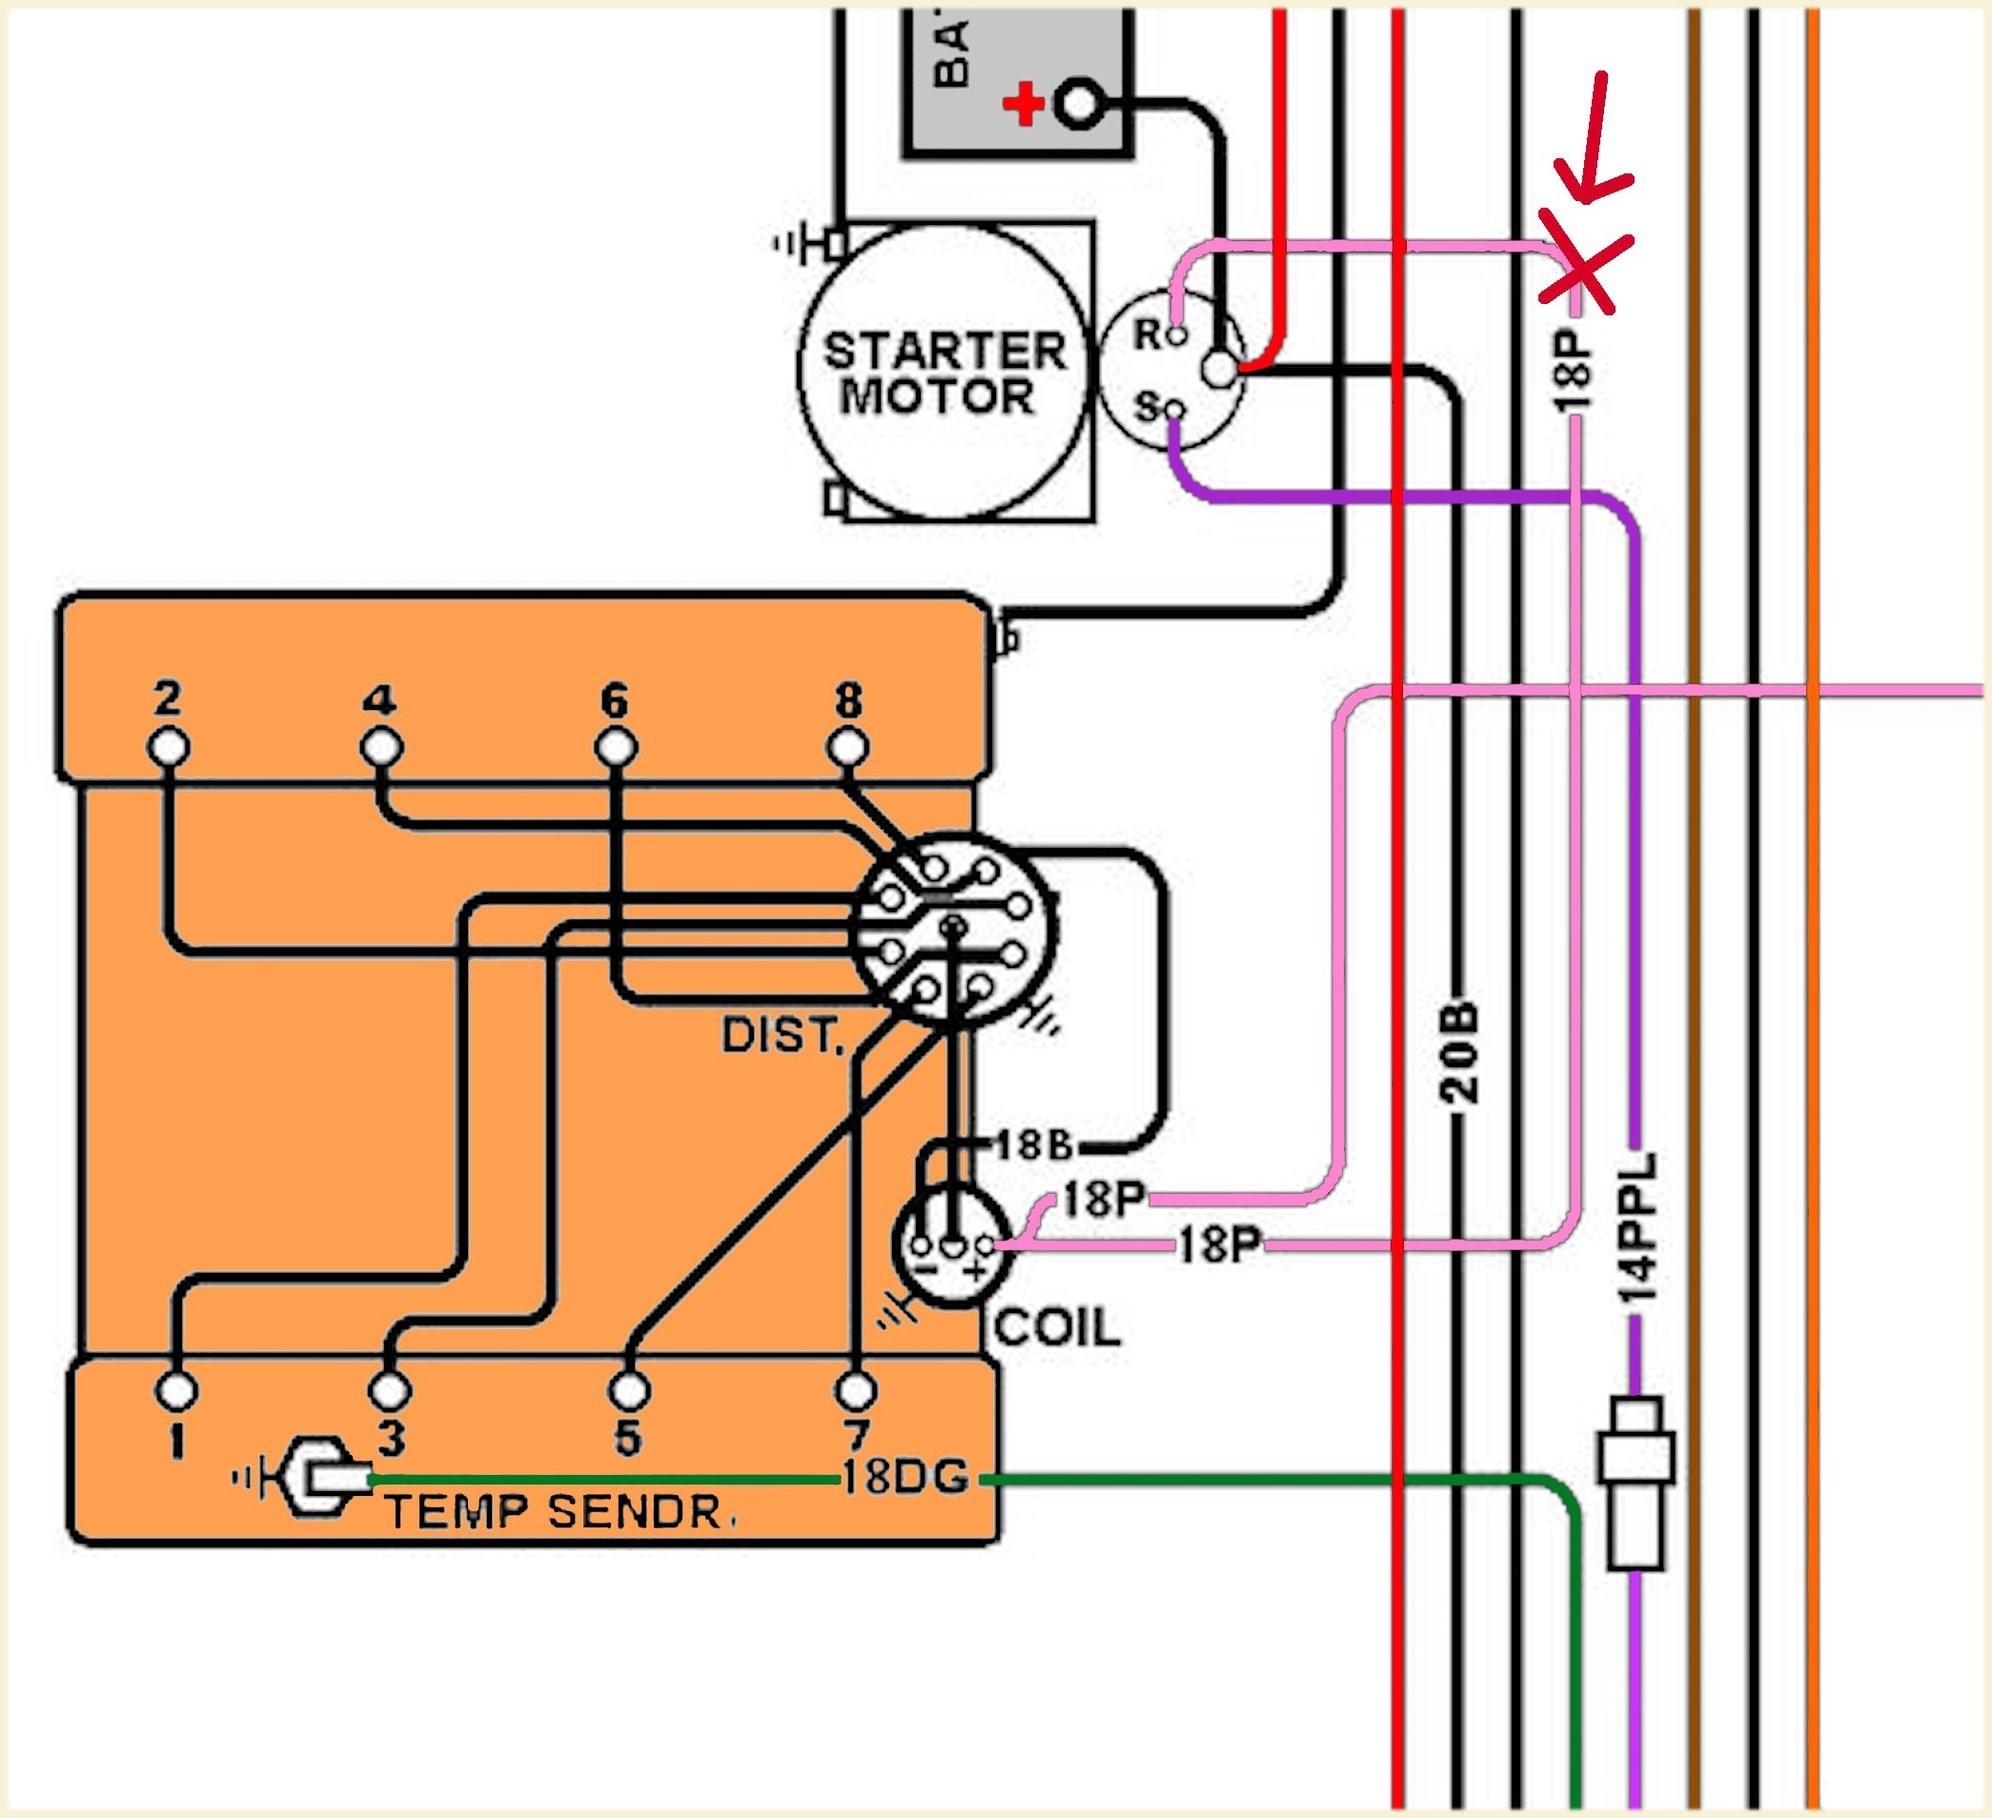 Wright Stander Electric Start Wire Schematic Diagram] Nokia C2 Diagram Full Version Hd Quality C2 Diagram Of Wright Stander Electric Start Wire Schematic